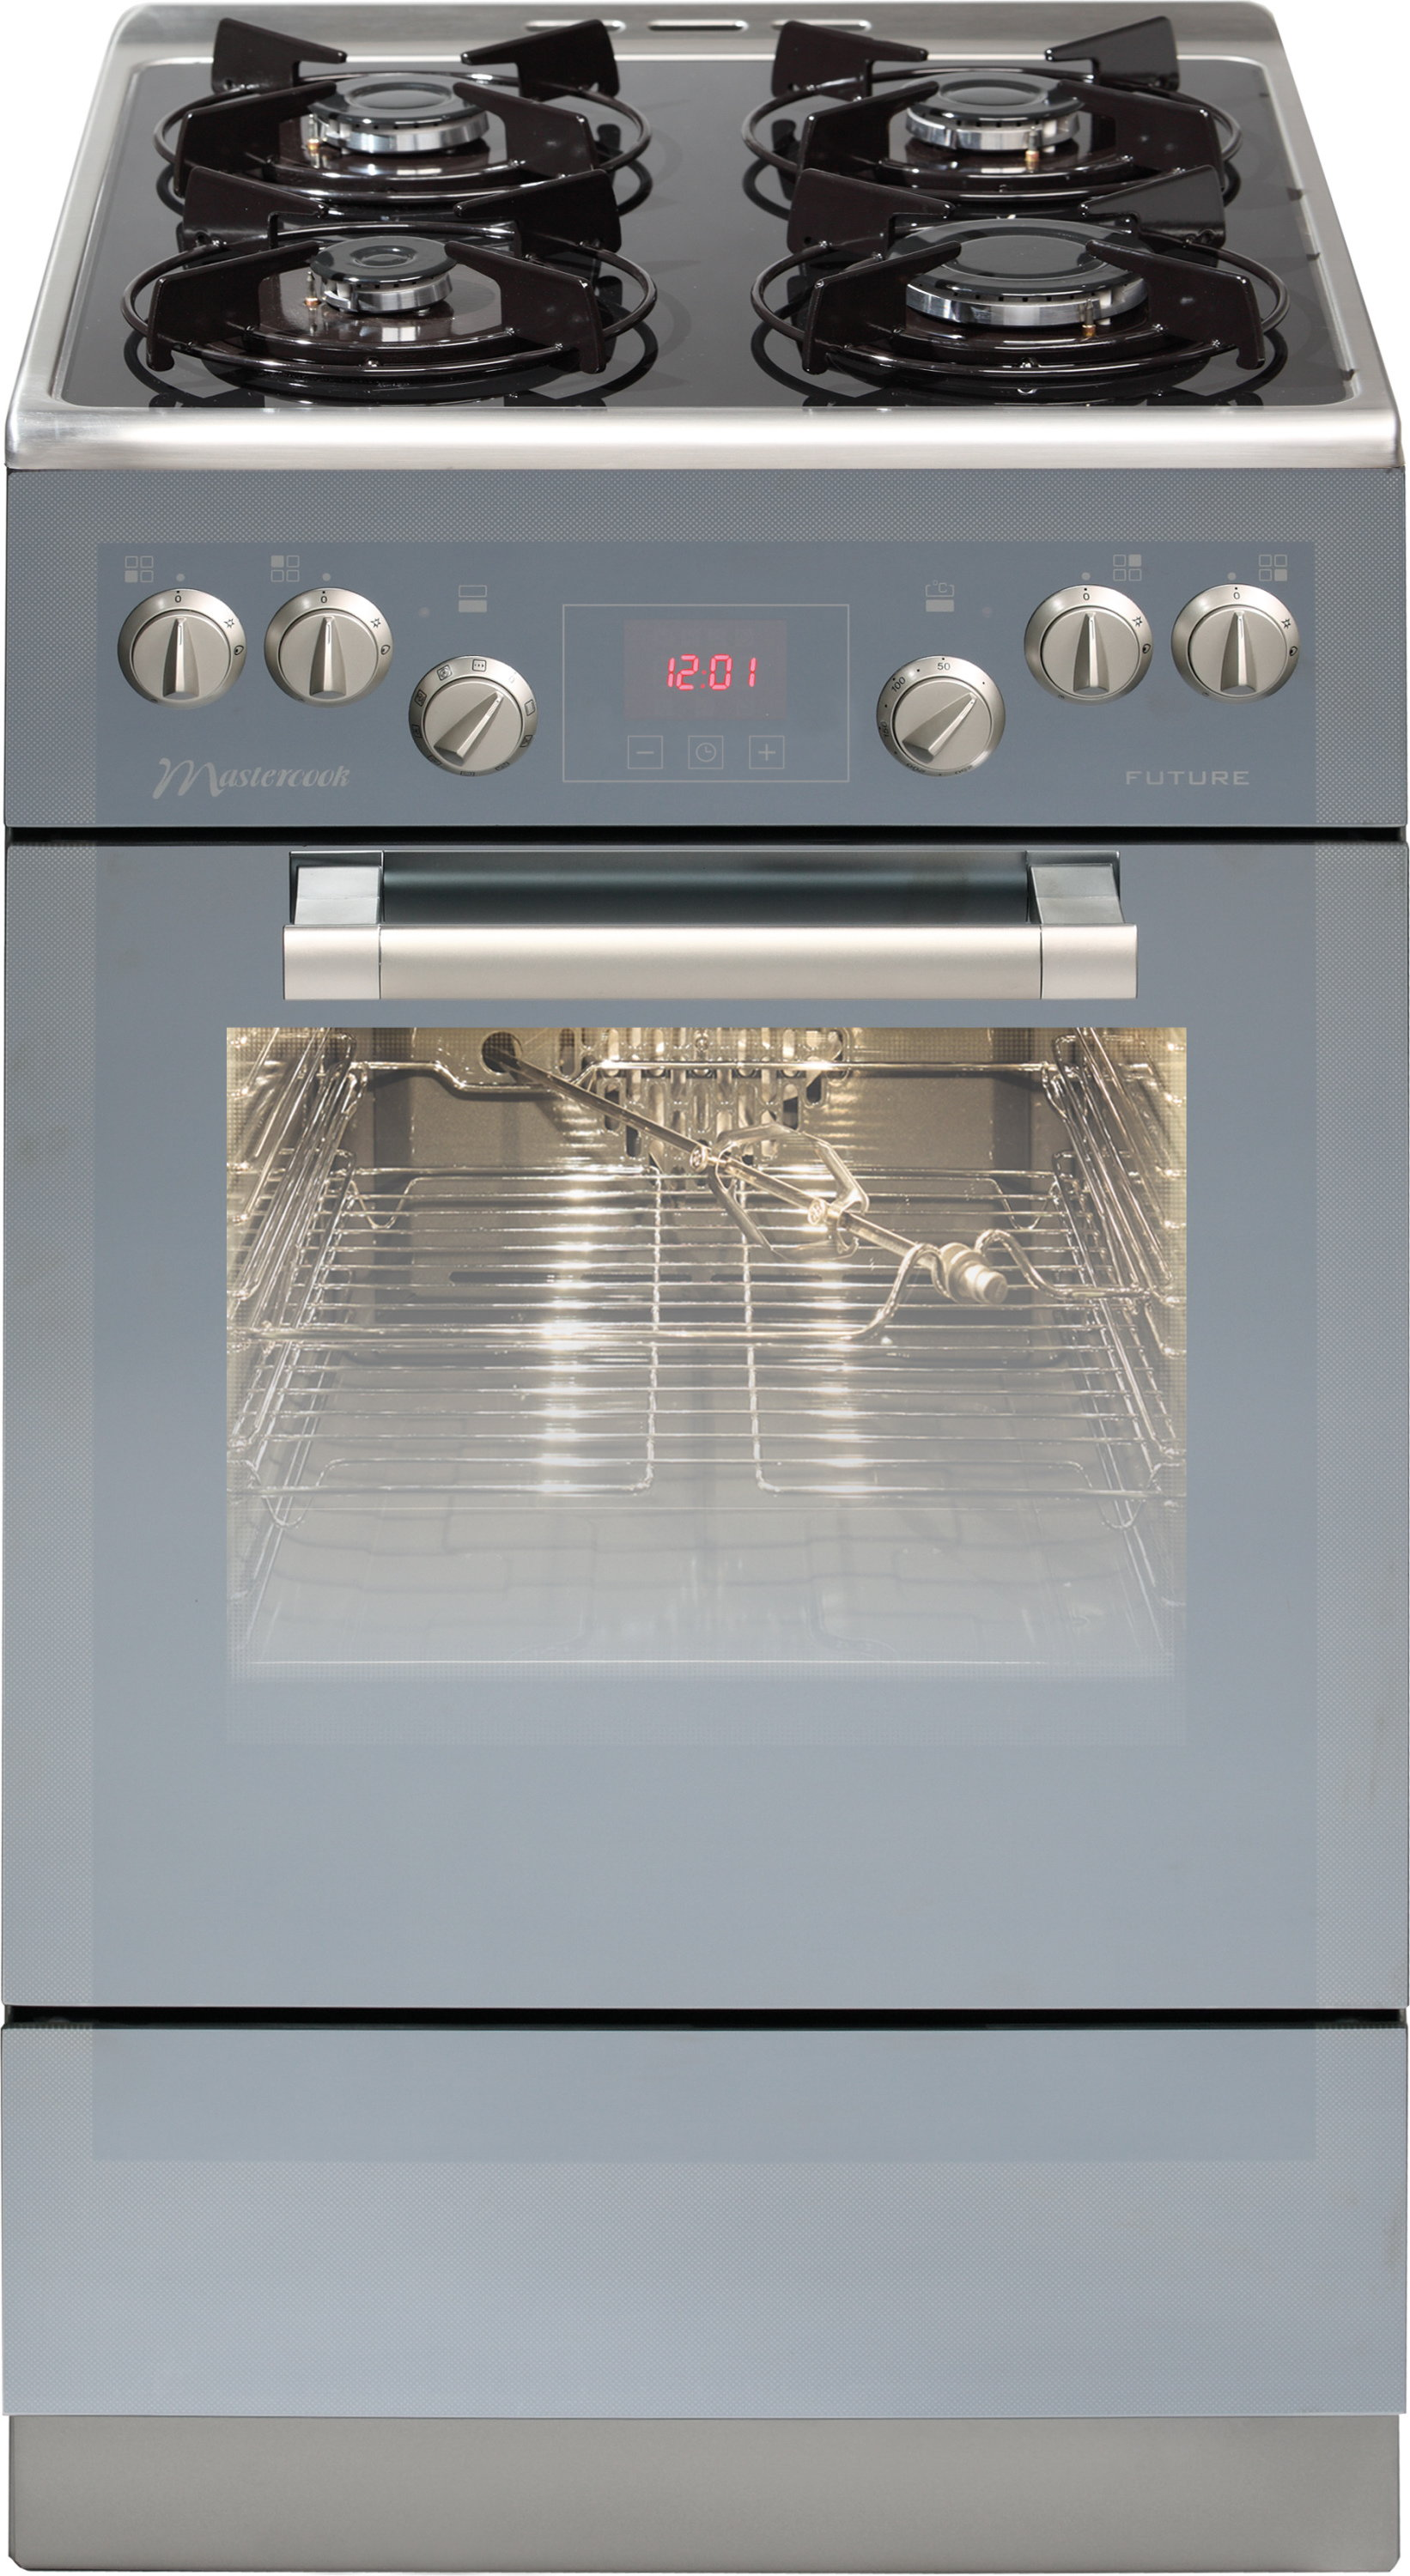 Mastercook KGE 3490 LUX FUTURE